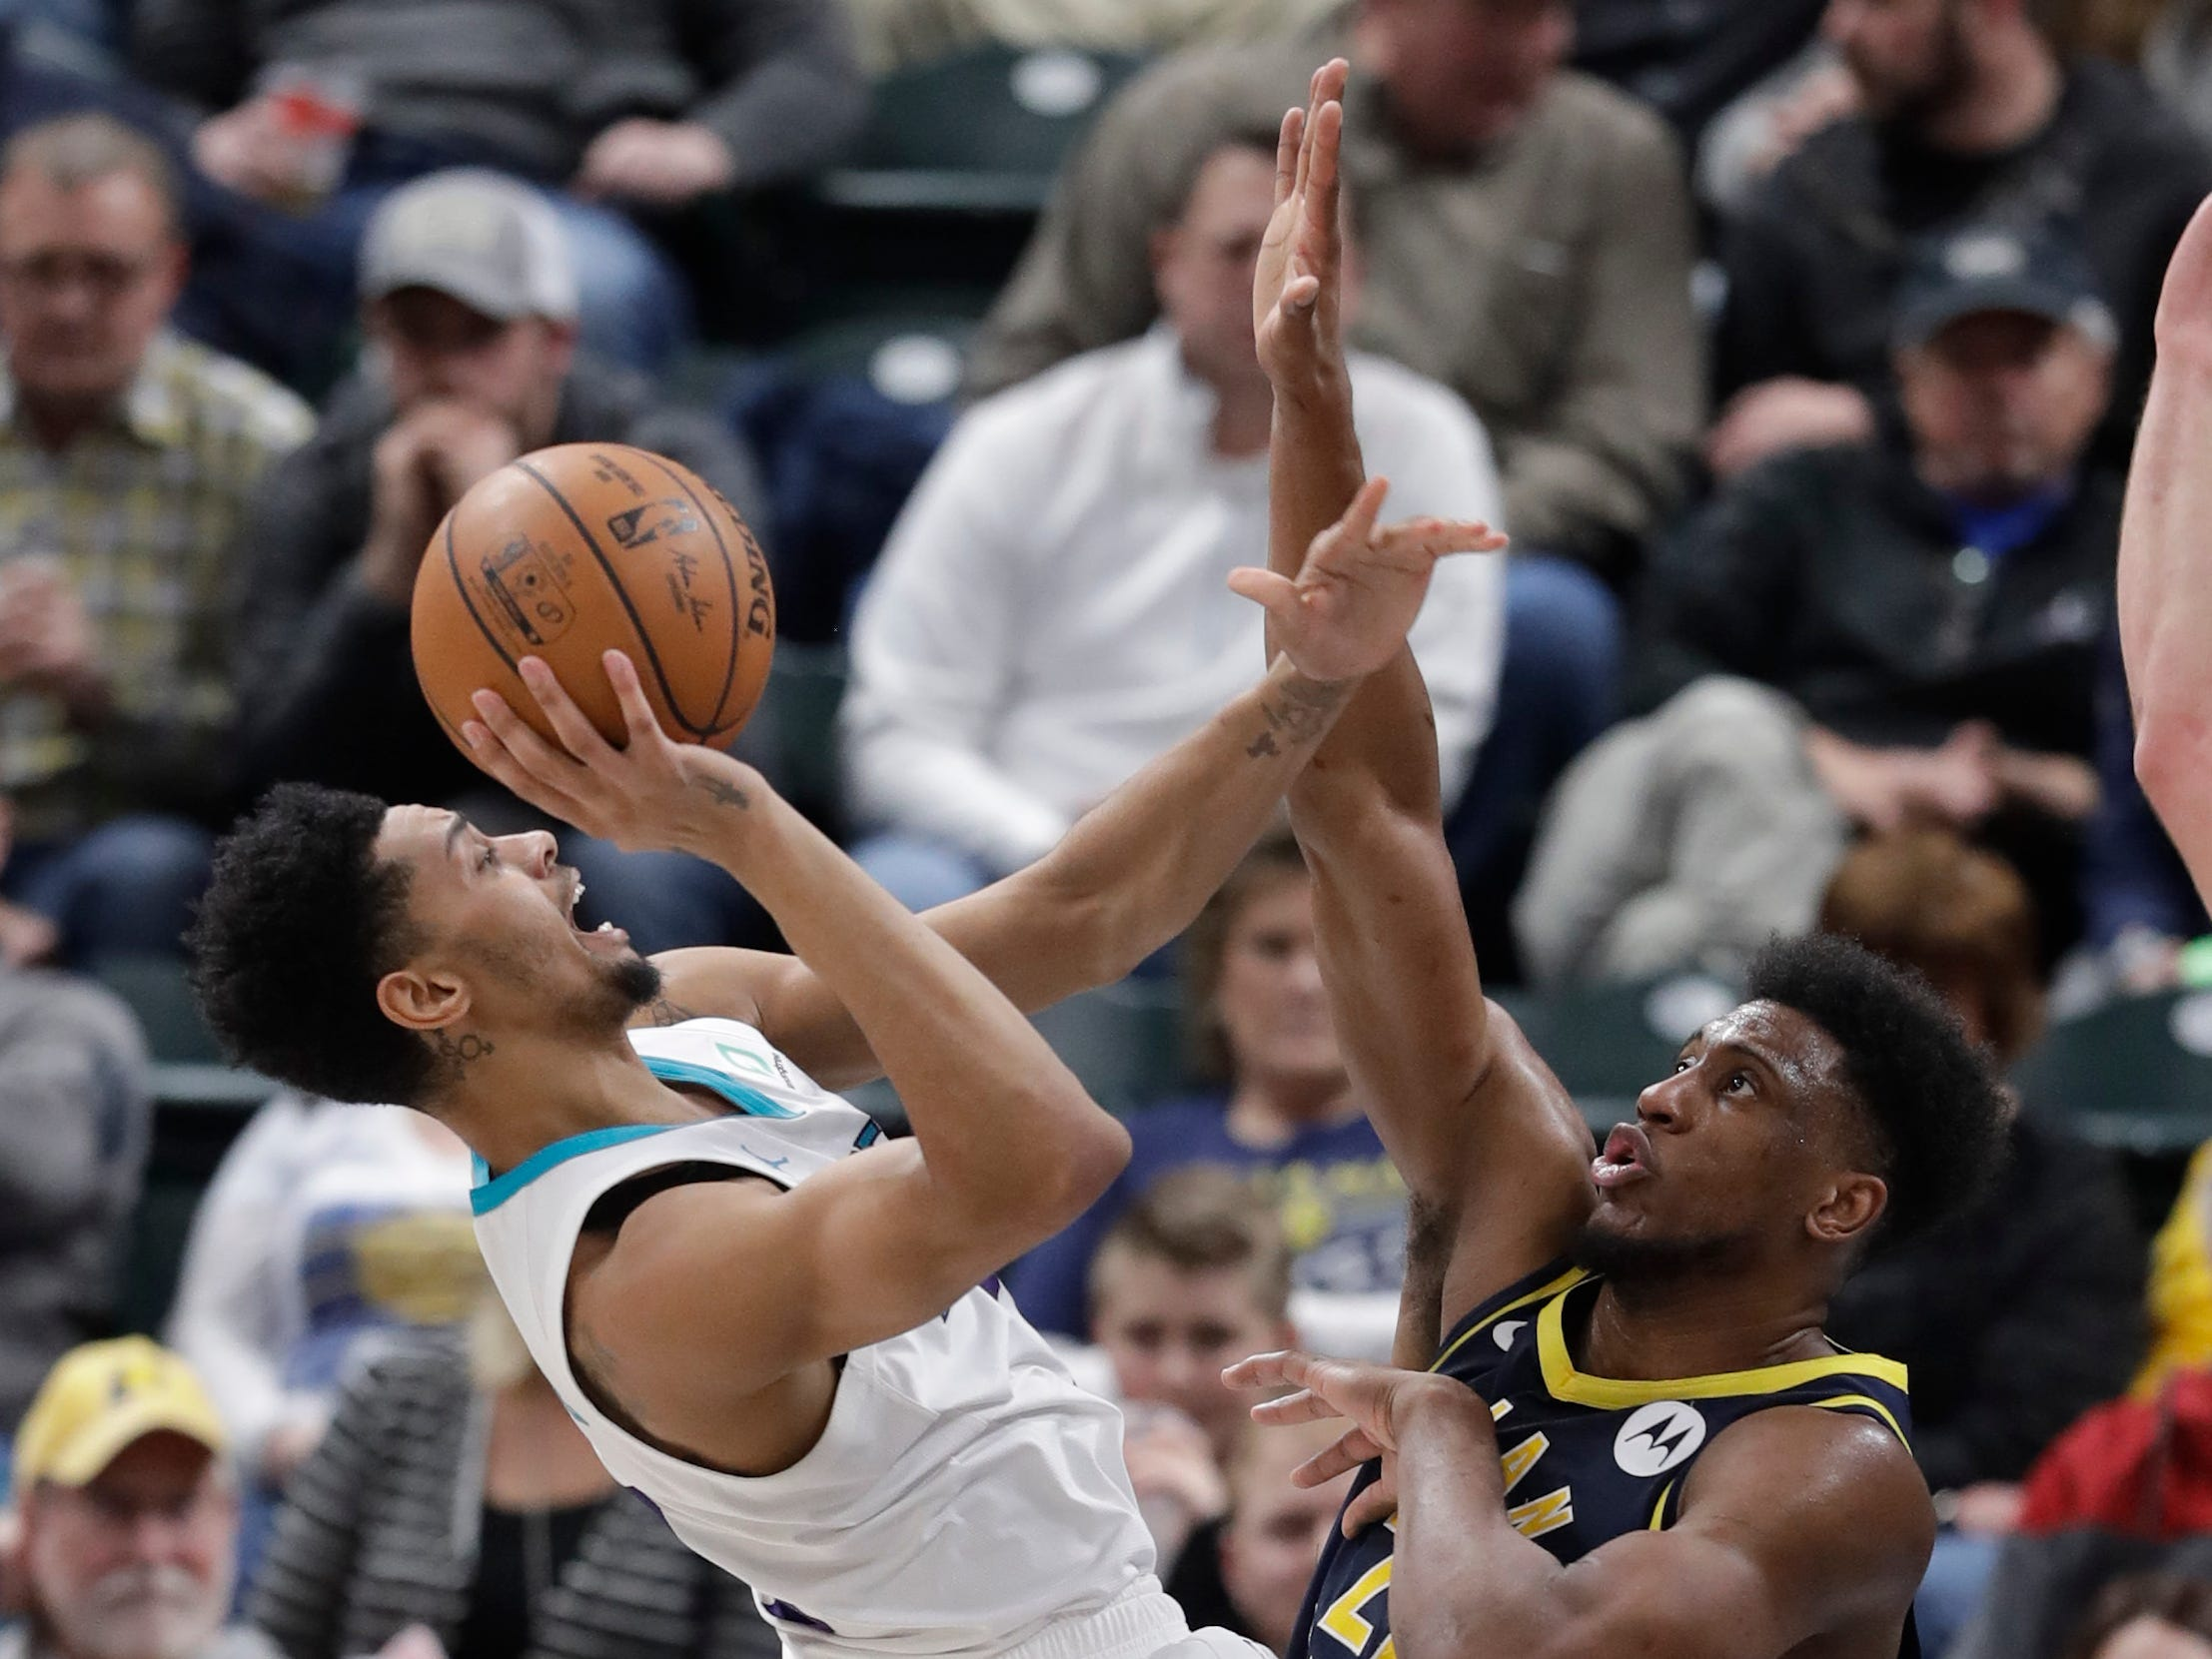 Charlotte Hornets' Jeremy Lamb (3) puts up a shot against Indiana Pacers' Thaddeus Young (21)[ during the second half of an NBA basketball game, Monday, Feb. 11, 2019, in Indianapolis. Indiana won 99-90.